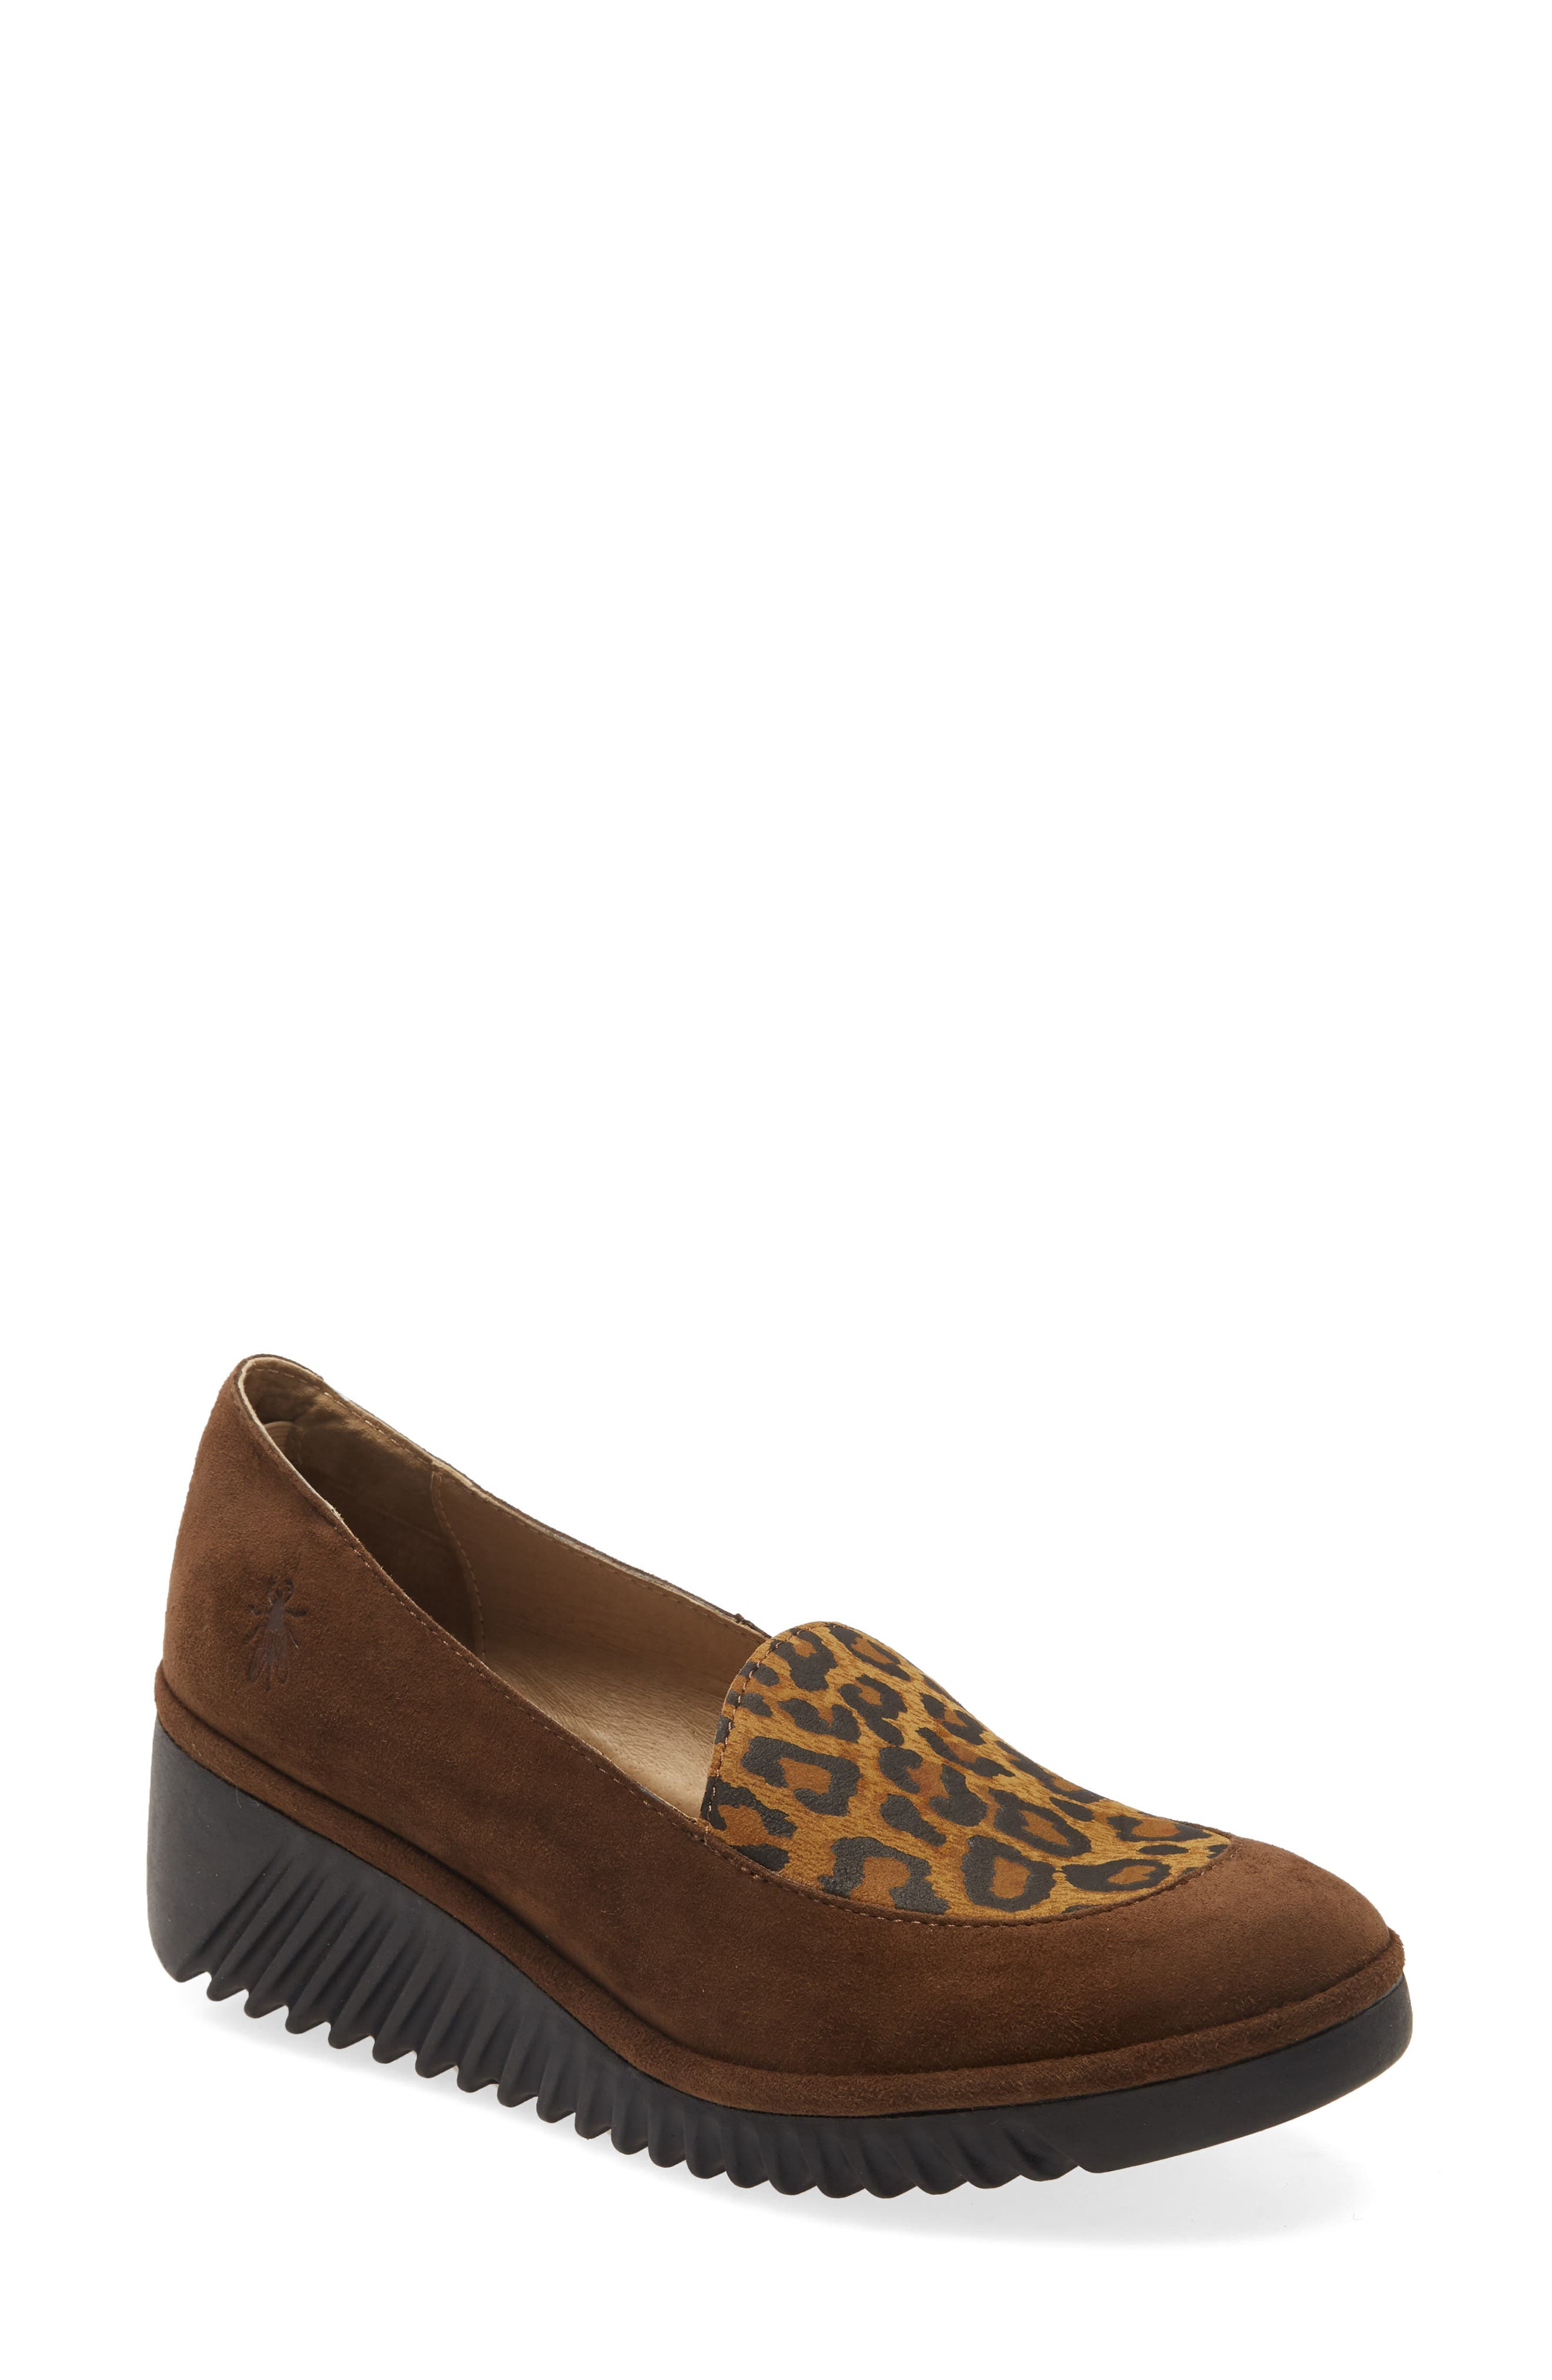 A waved, flexible wedge sole heightens the contemporary style of this versatile leather loafer fitted with a cushioned footbed. Style Name: Fly London Luan Wedge Loafer (Women). Style Number: 6094454. Available in stores.